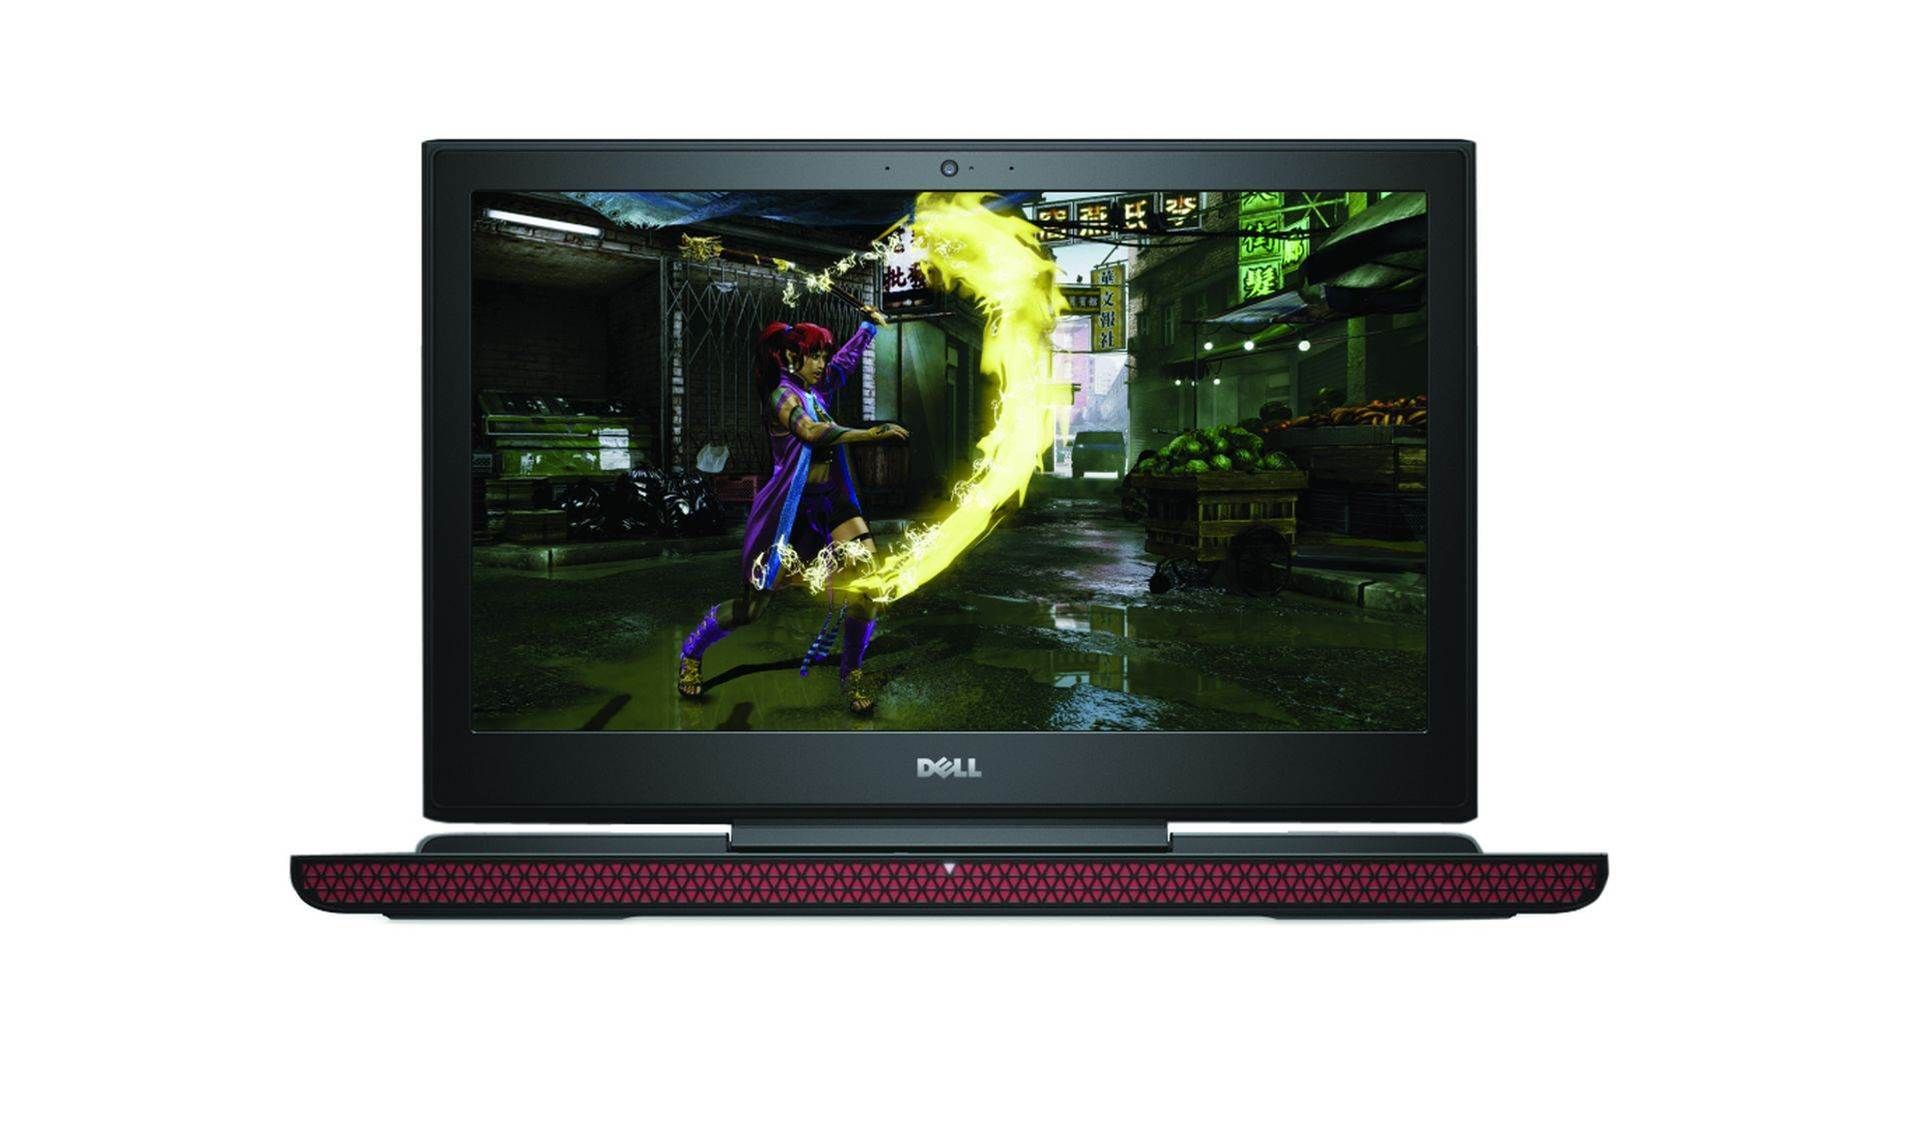 Review: Dell Inspiron 15 7000 Gaming